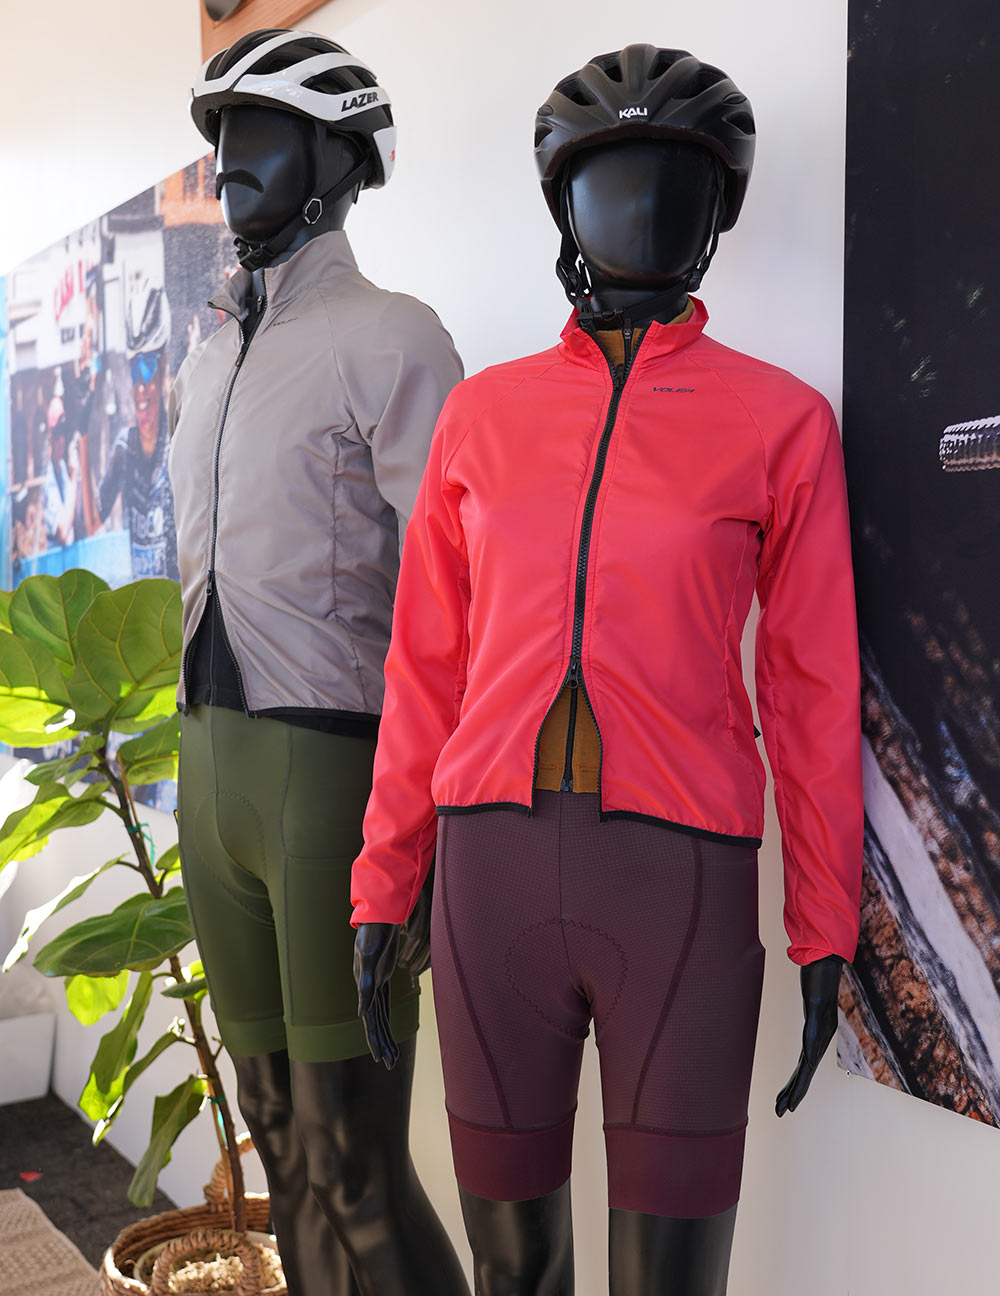 voler cool weather cycling kits for men and women